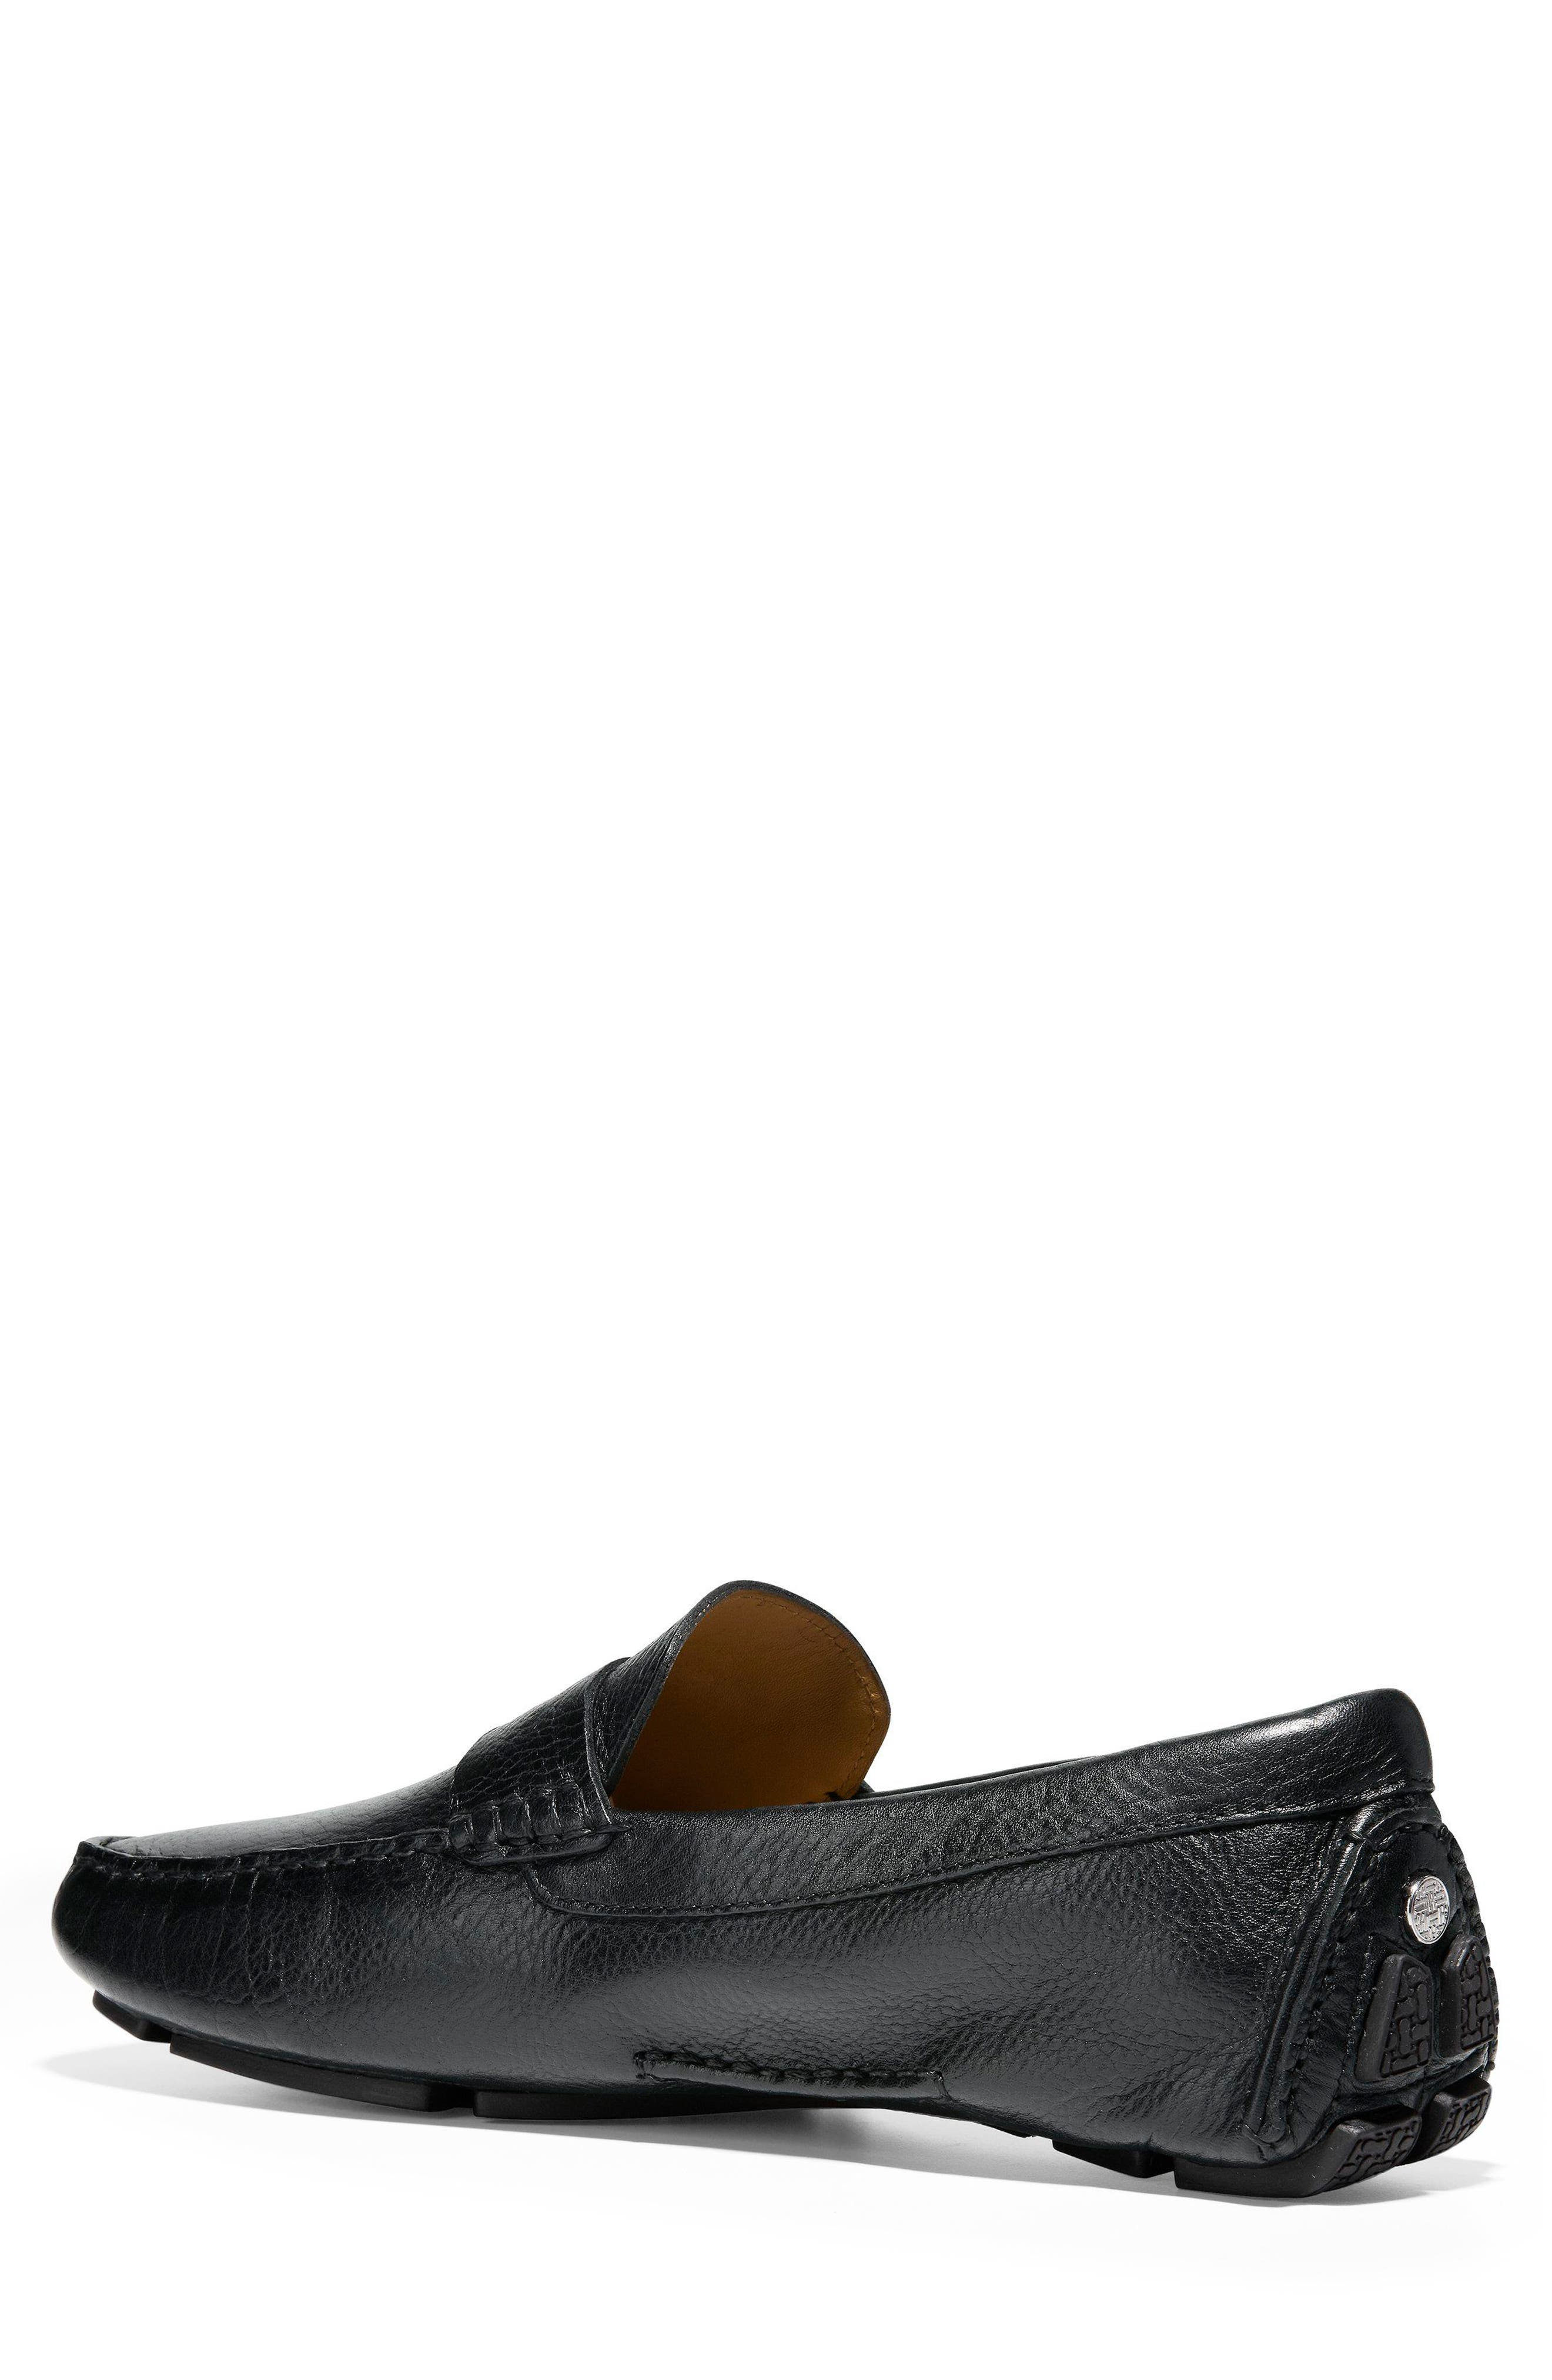 COLE HAAN, 'Howland' Penny Loafer, Alternate thumbnail 2, color, BLACK TUMBLED